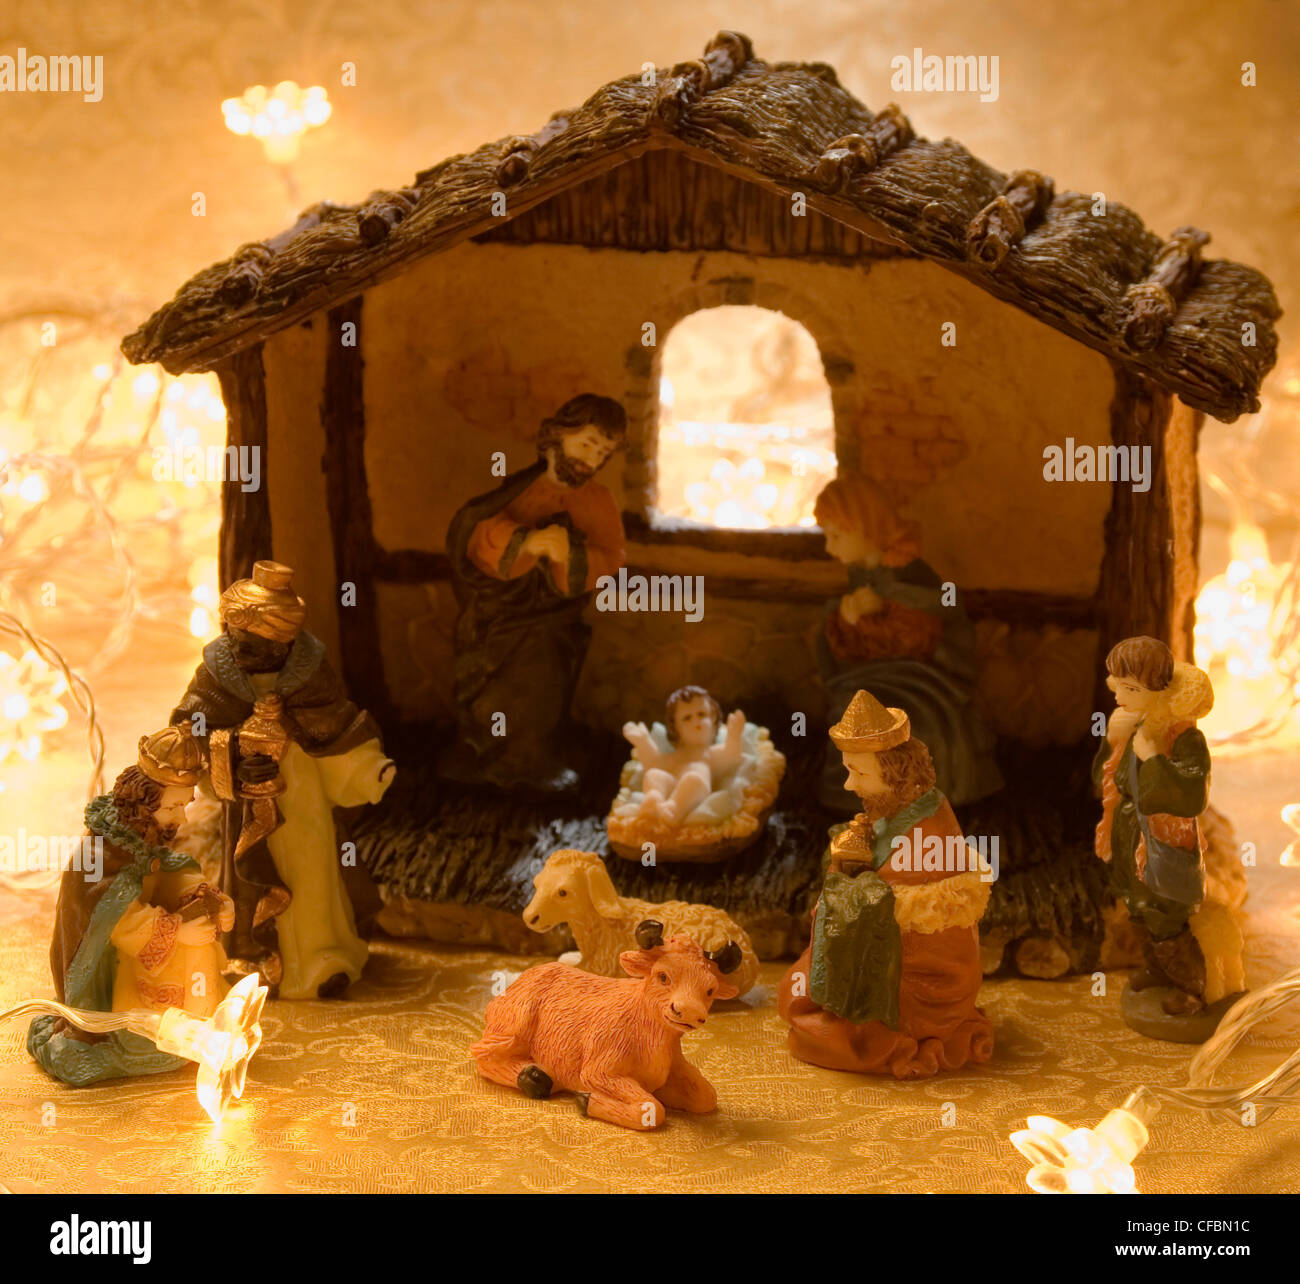 Jesus Christmas Decorations.Nativity Scene Christmas Decoration Barn And Figurines Of